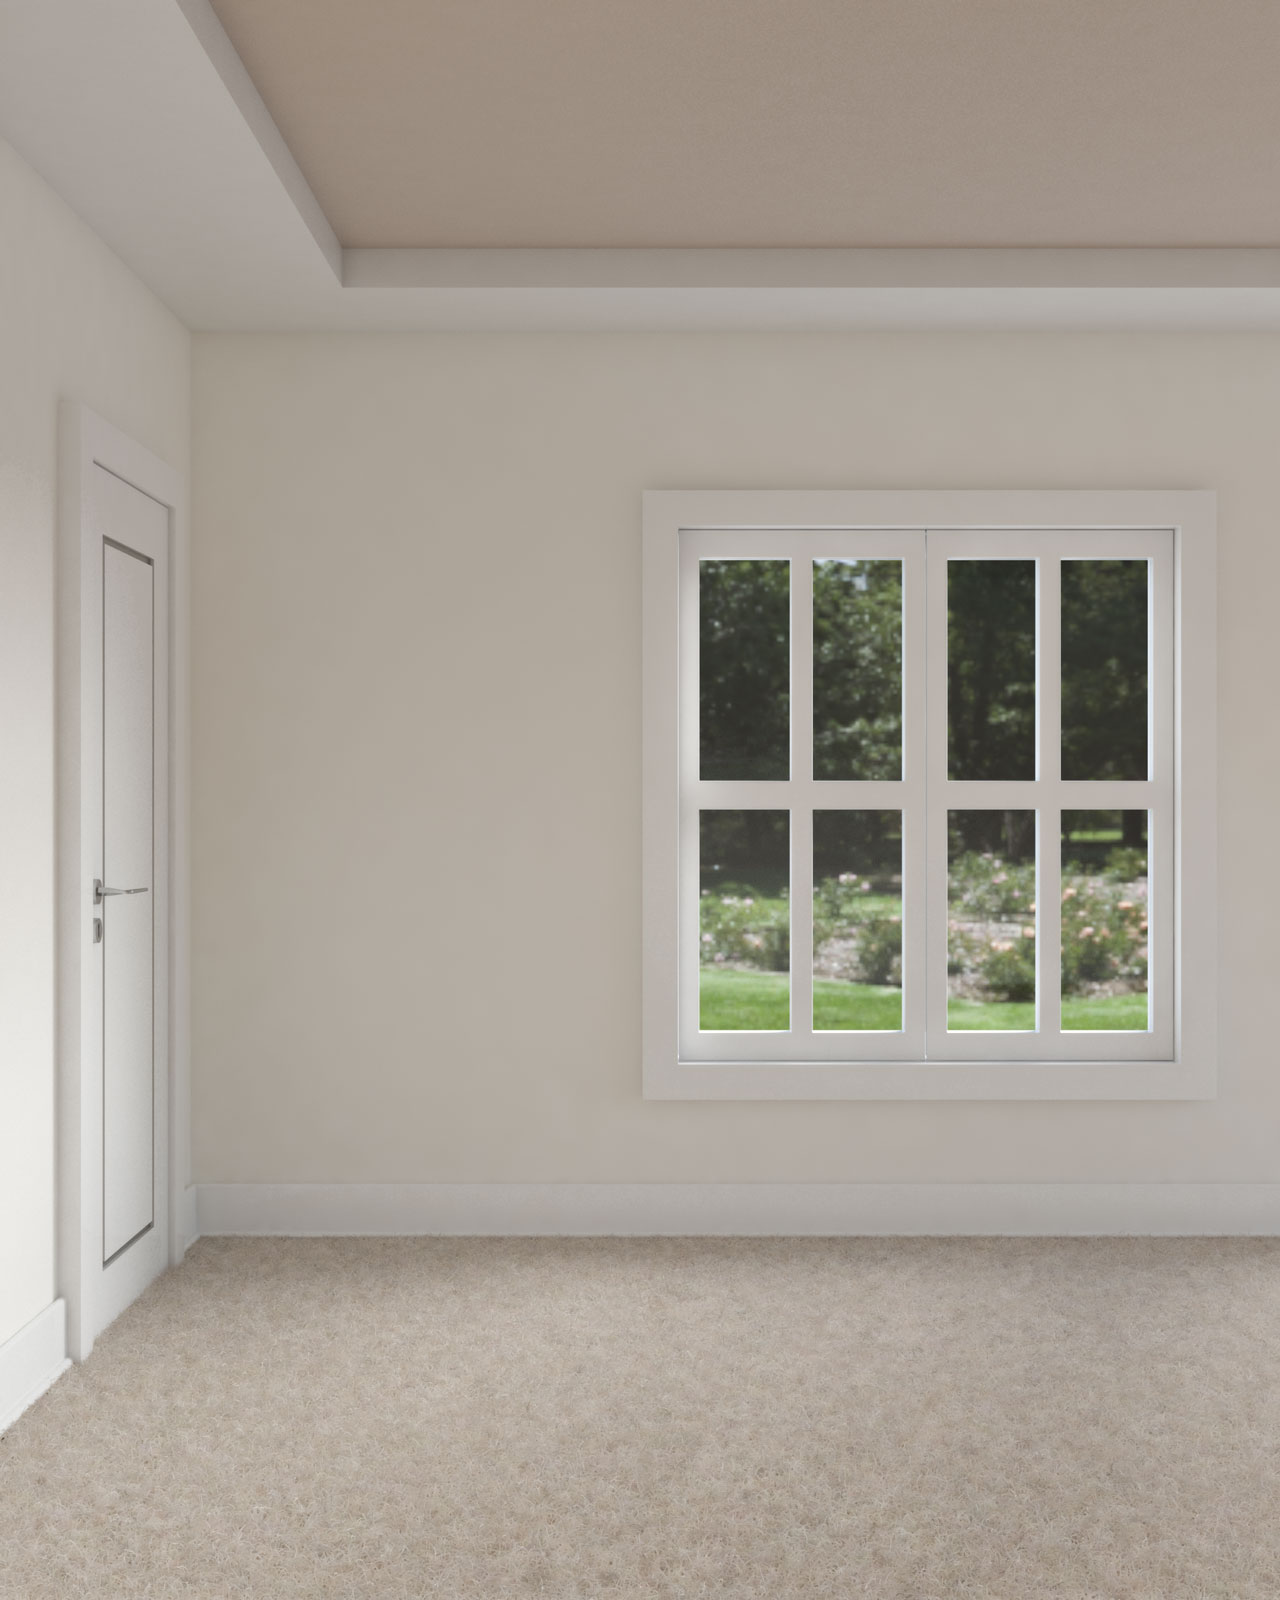 White dove walls with light brown ceiling